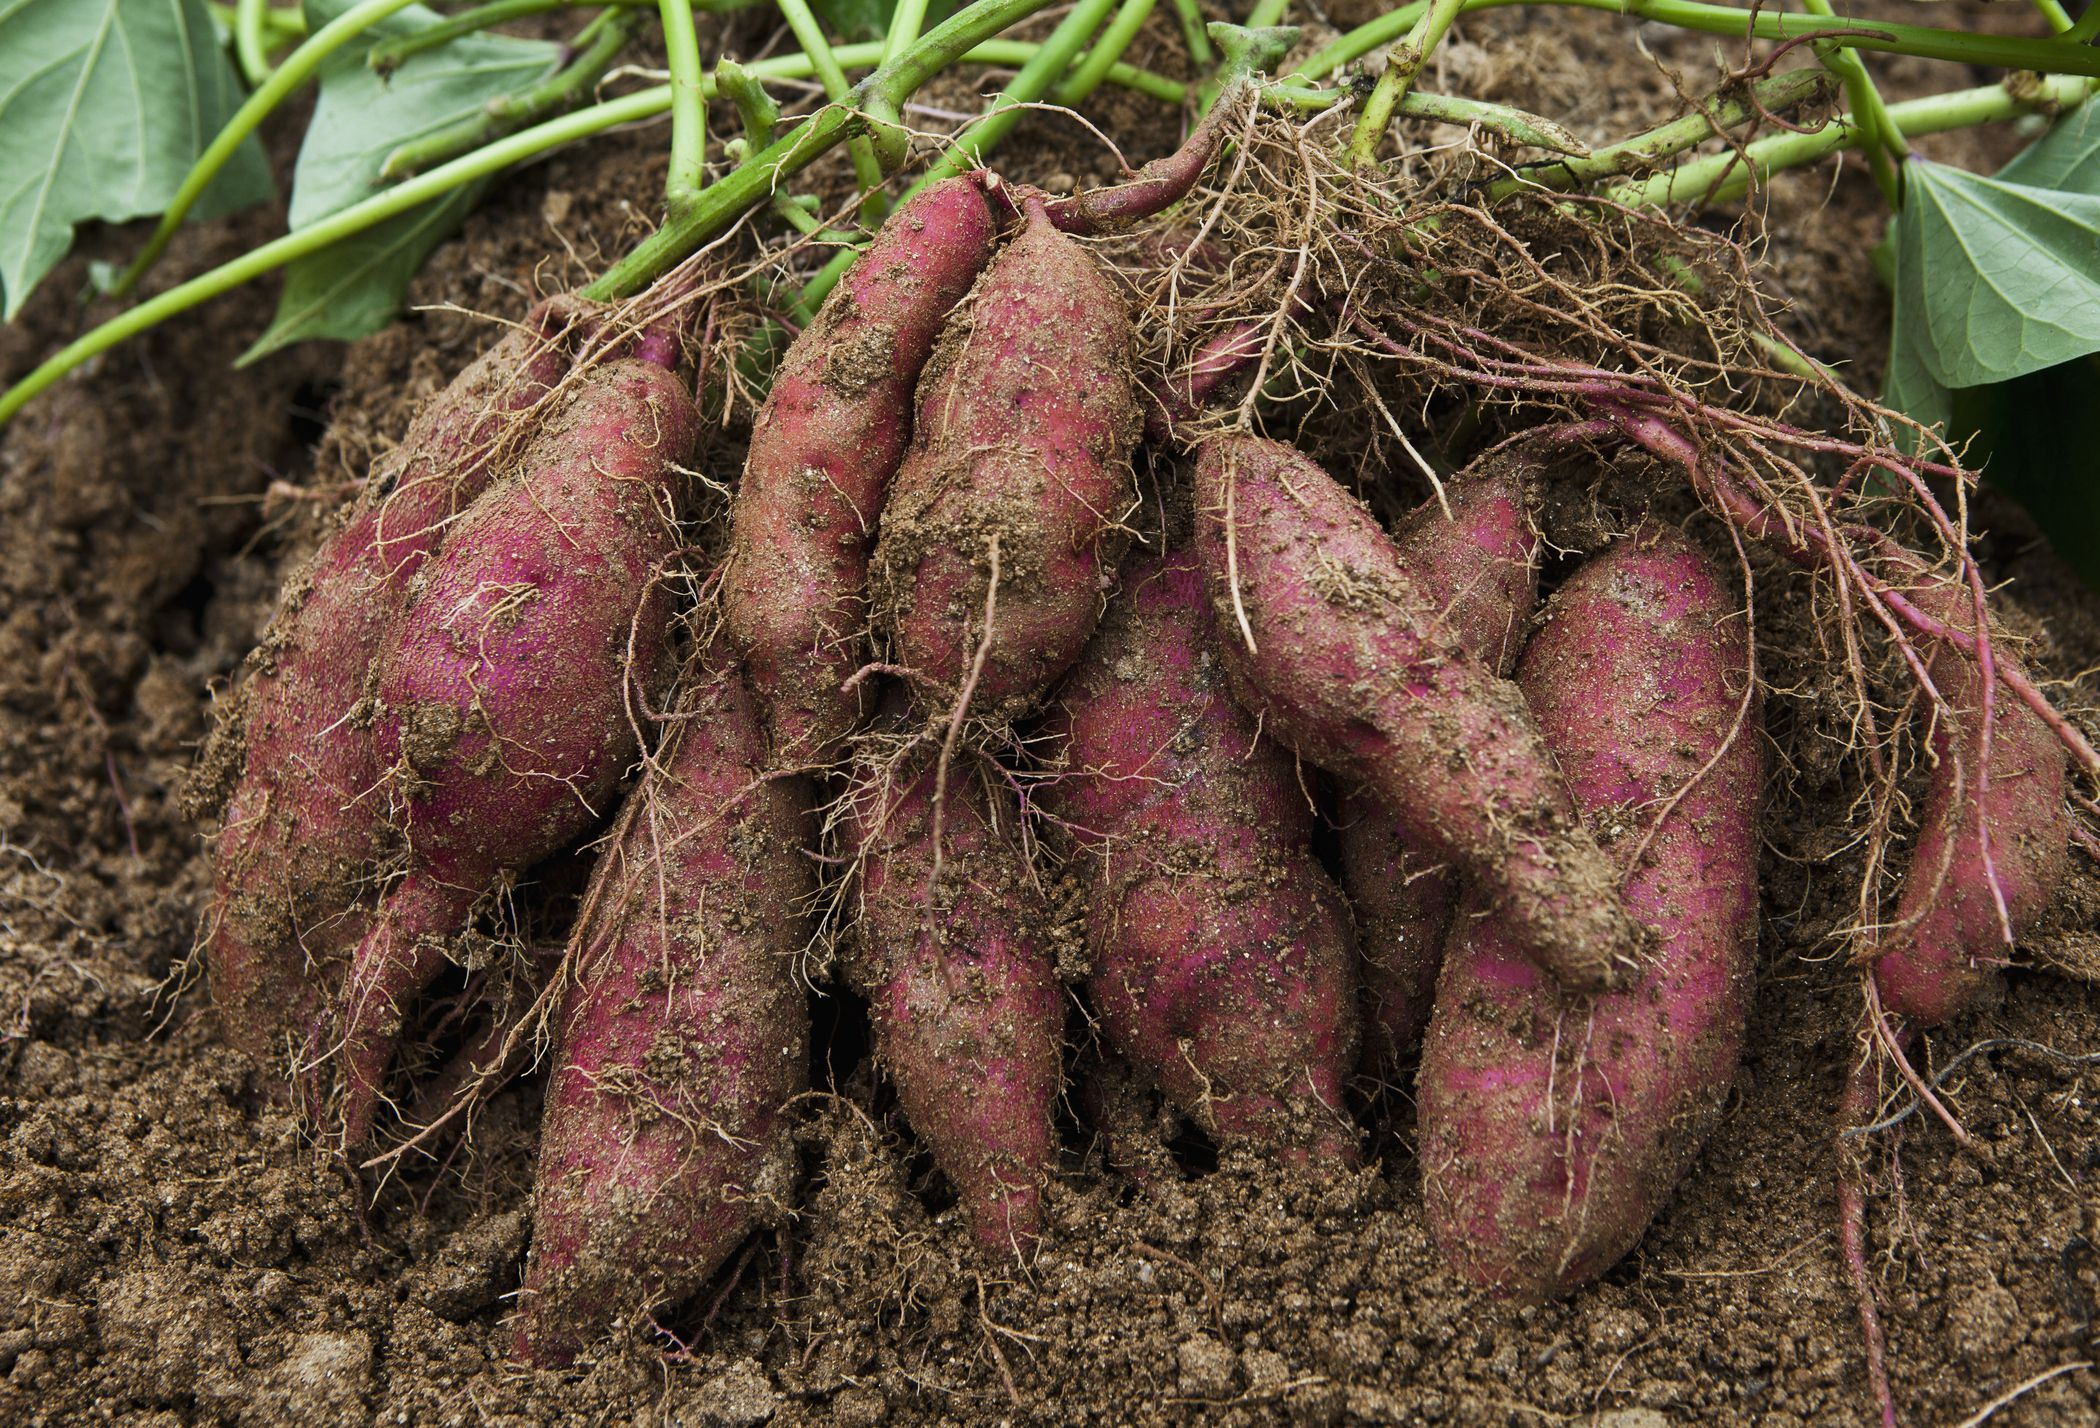 How to Grow Sweet Potatoes in a Home Garden